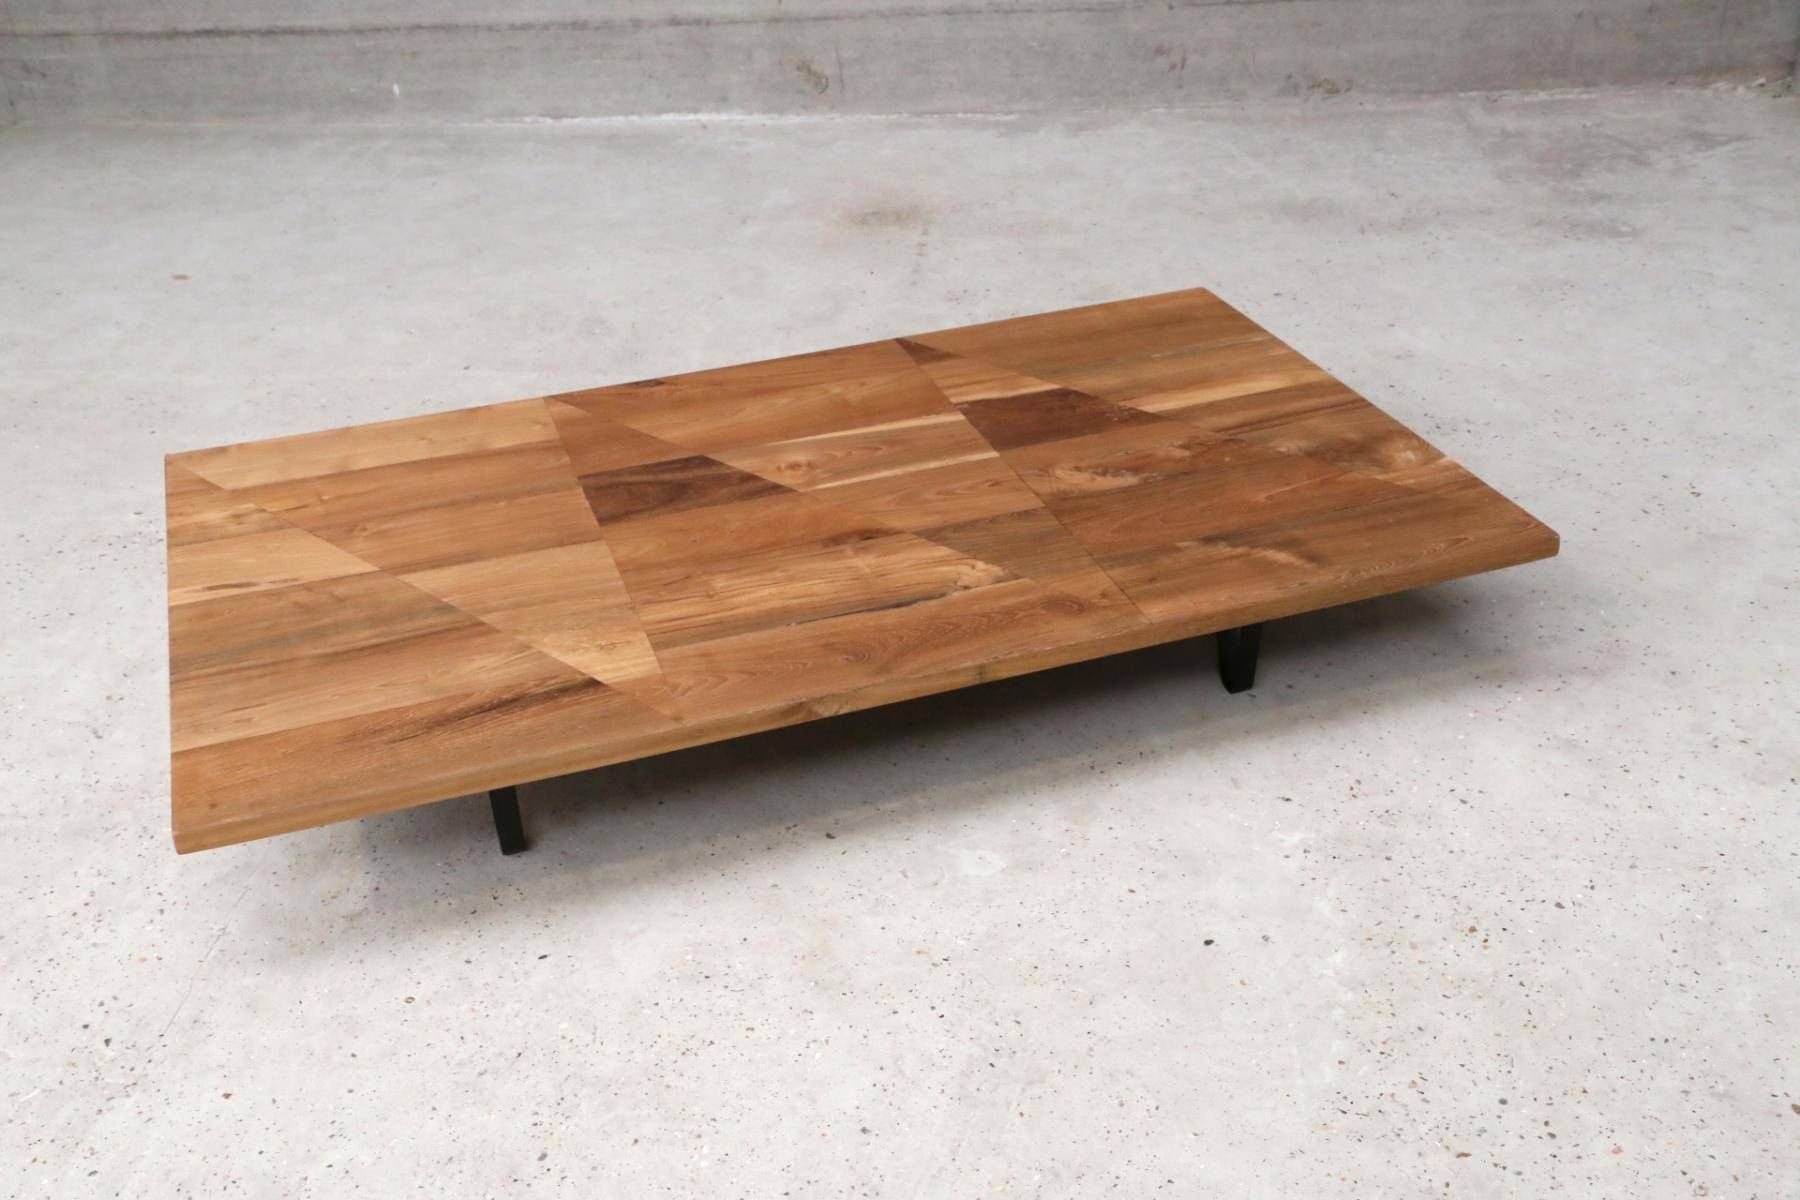 Large Low Coffee Table Tables Wooden Transformed Into Working / Thippo in Large Low Coffee Tables (Image 10 of 15)